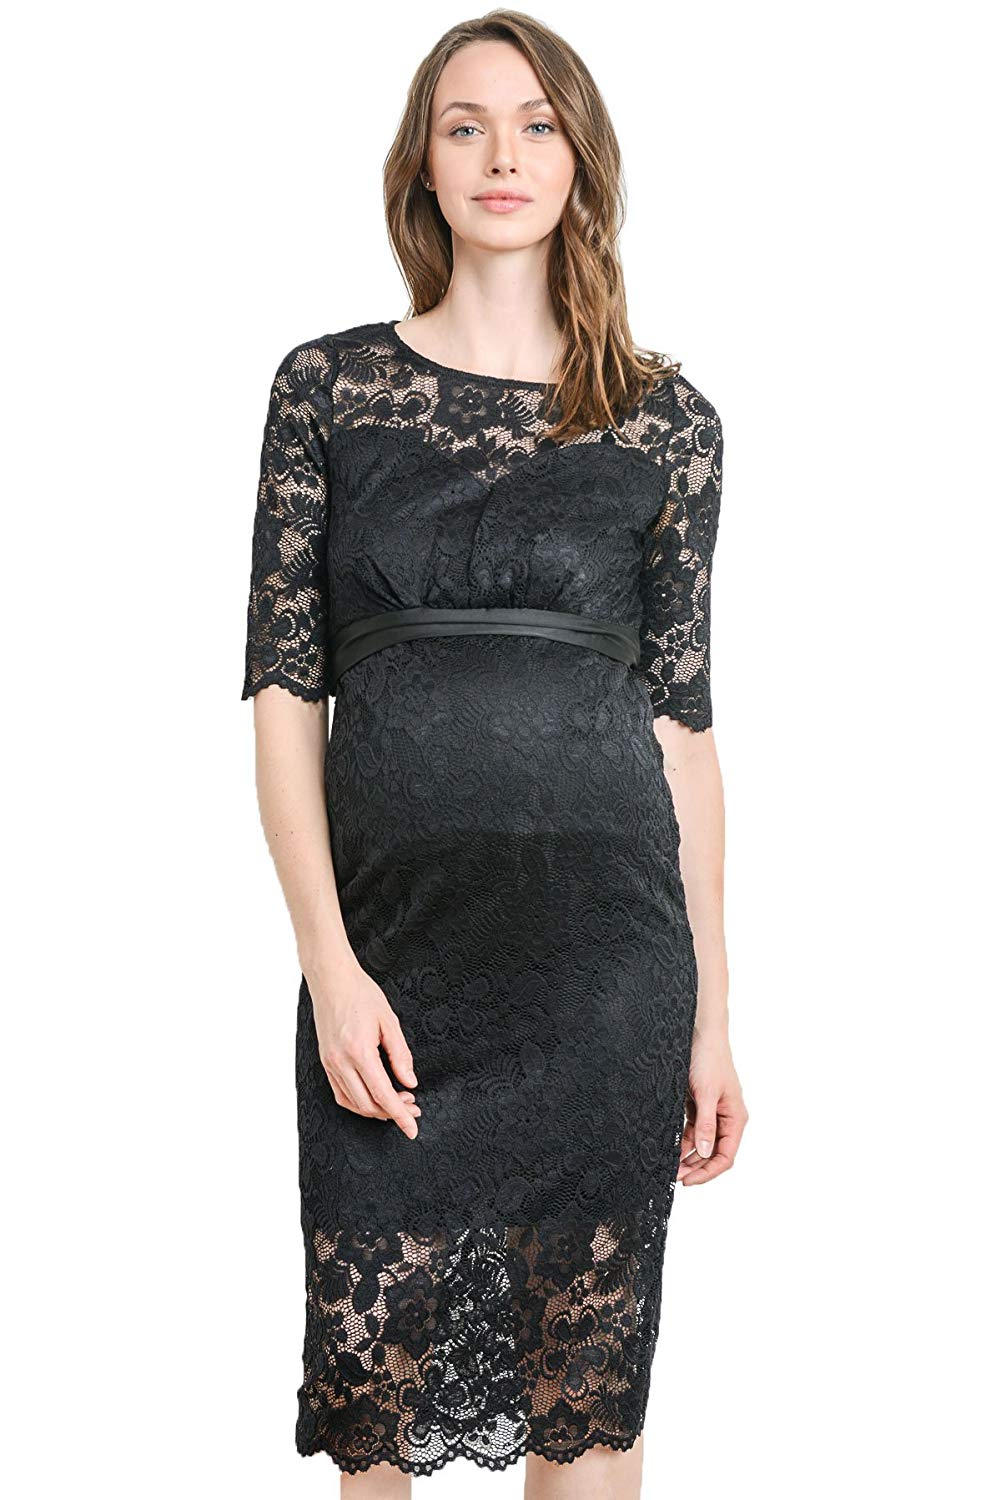 Black Floral Lace Maternity Dress